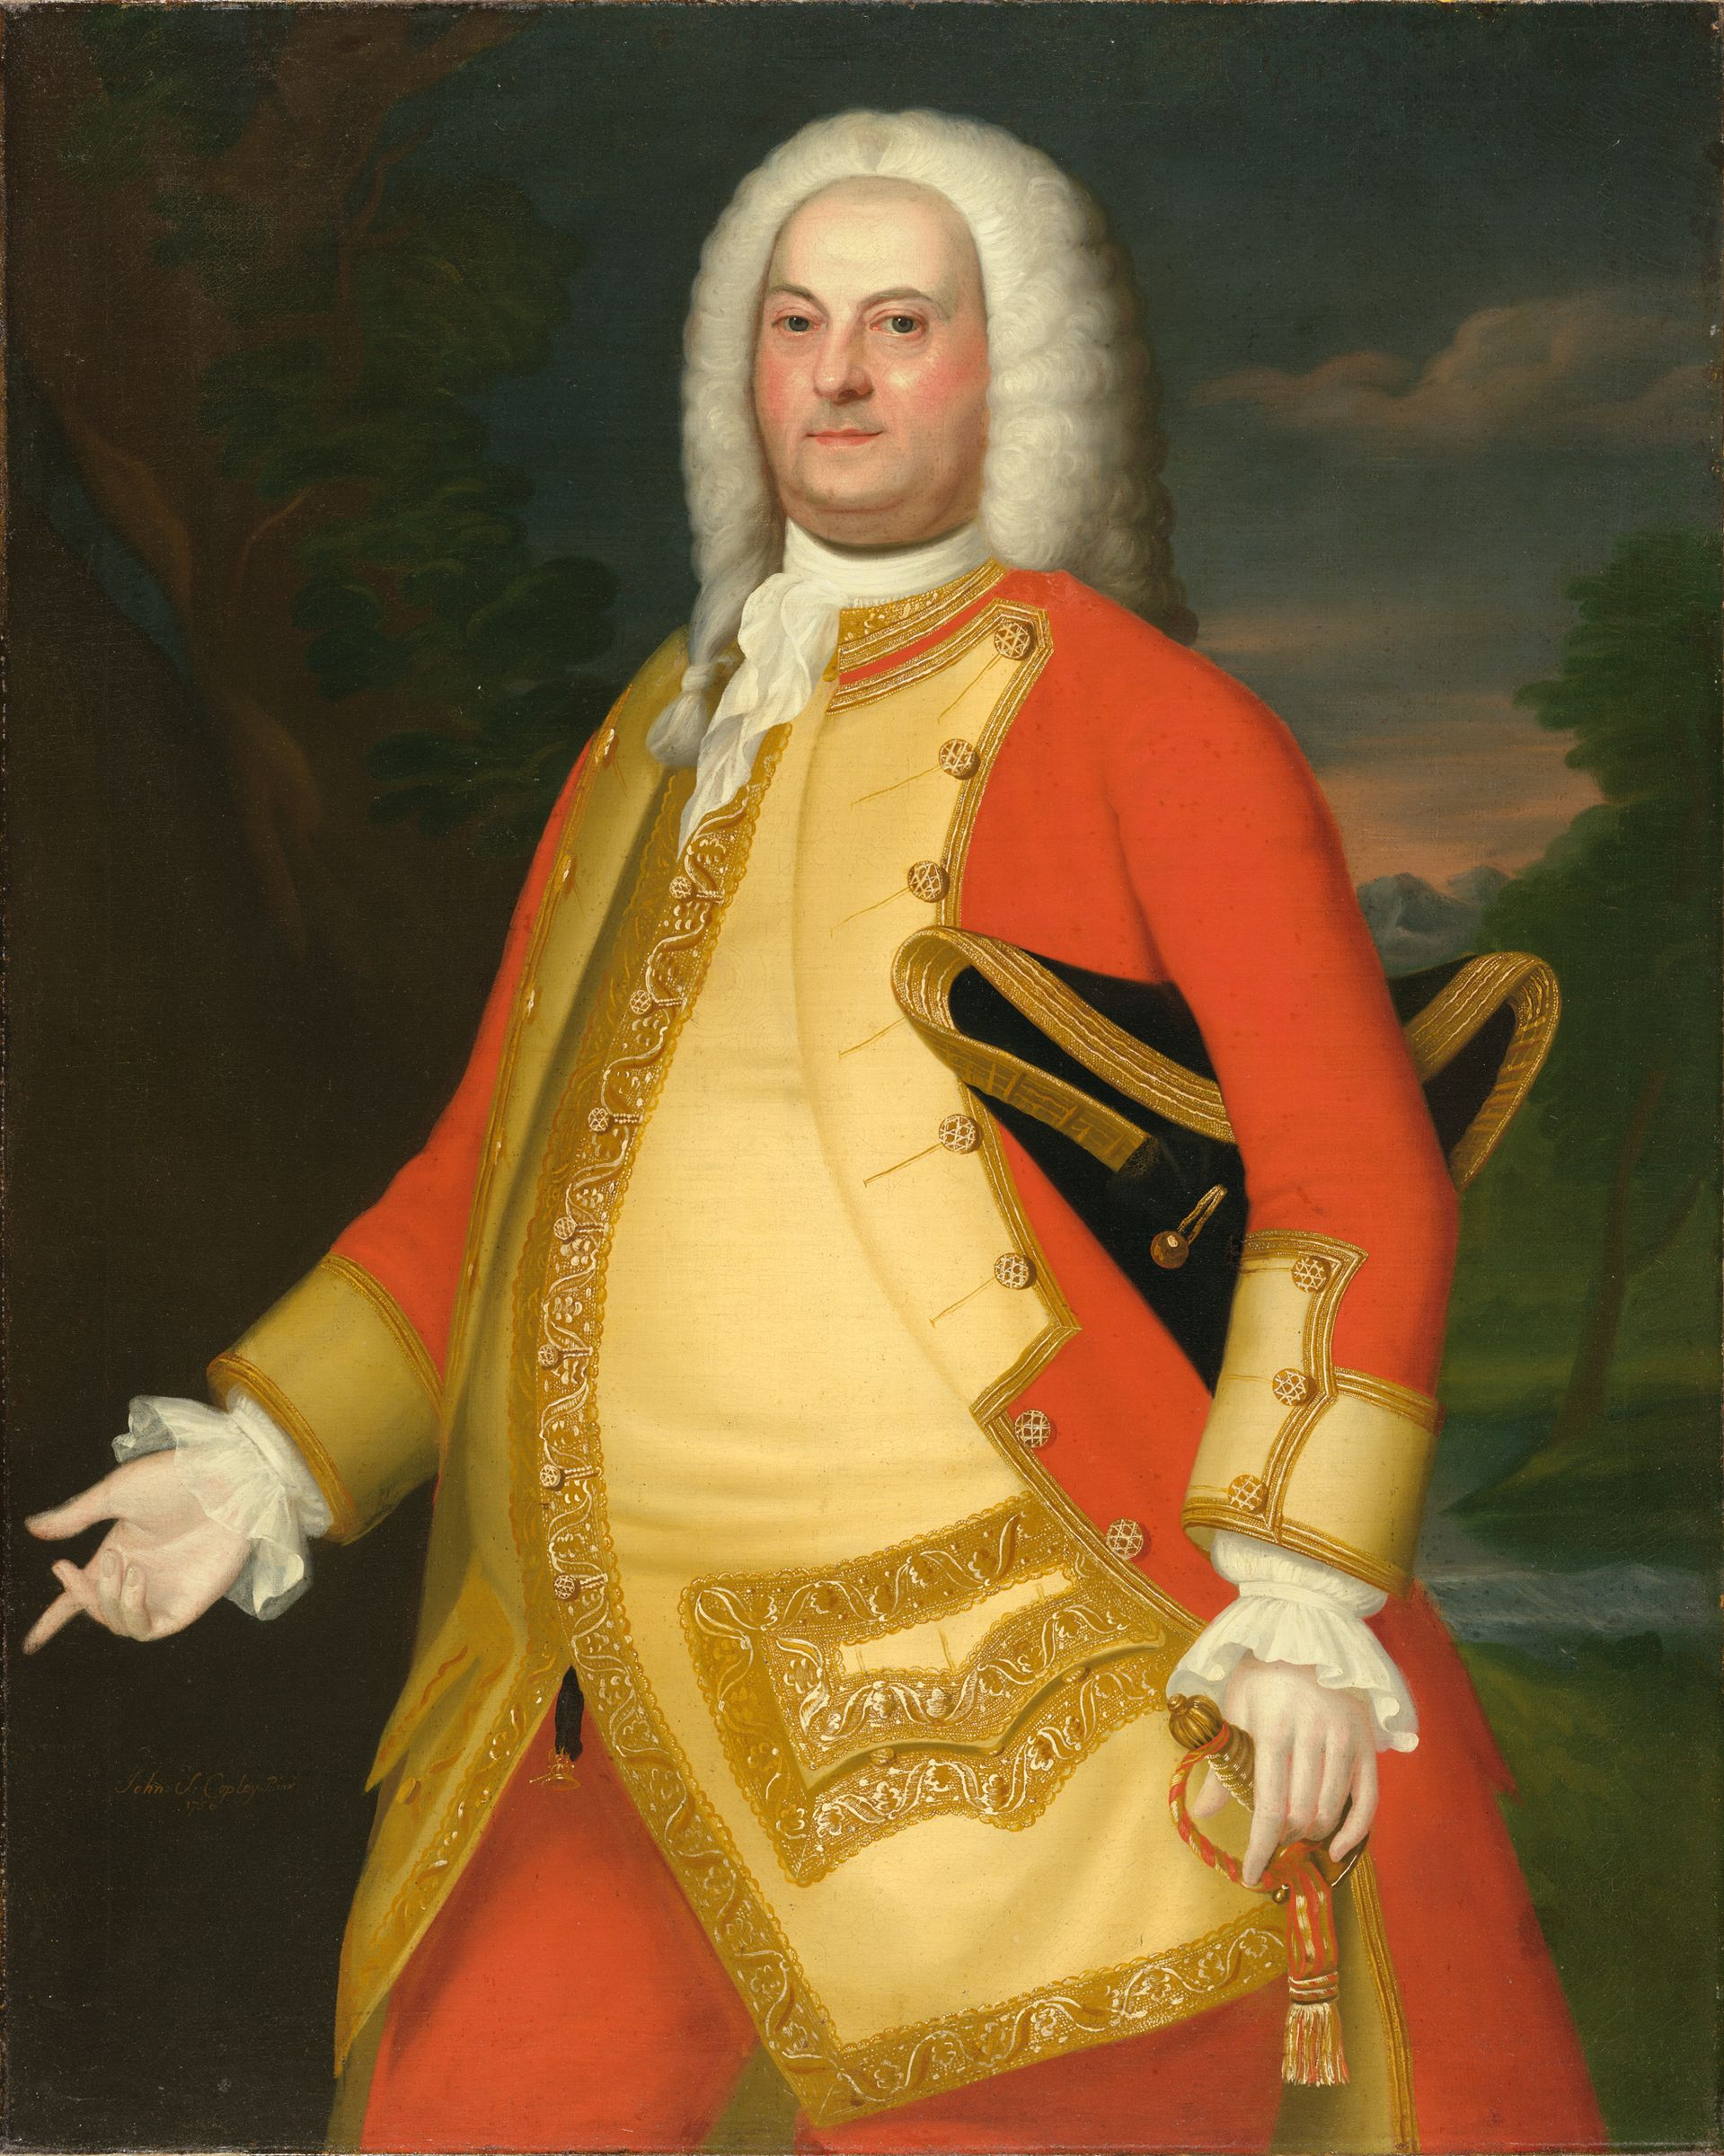 William Brattle (1706-1776)